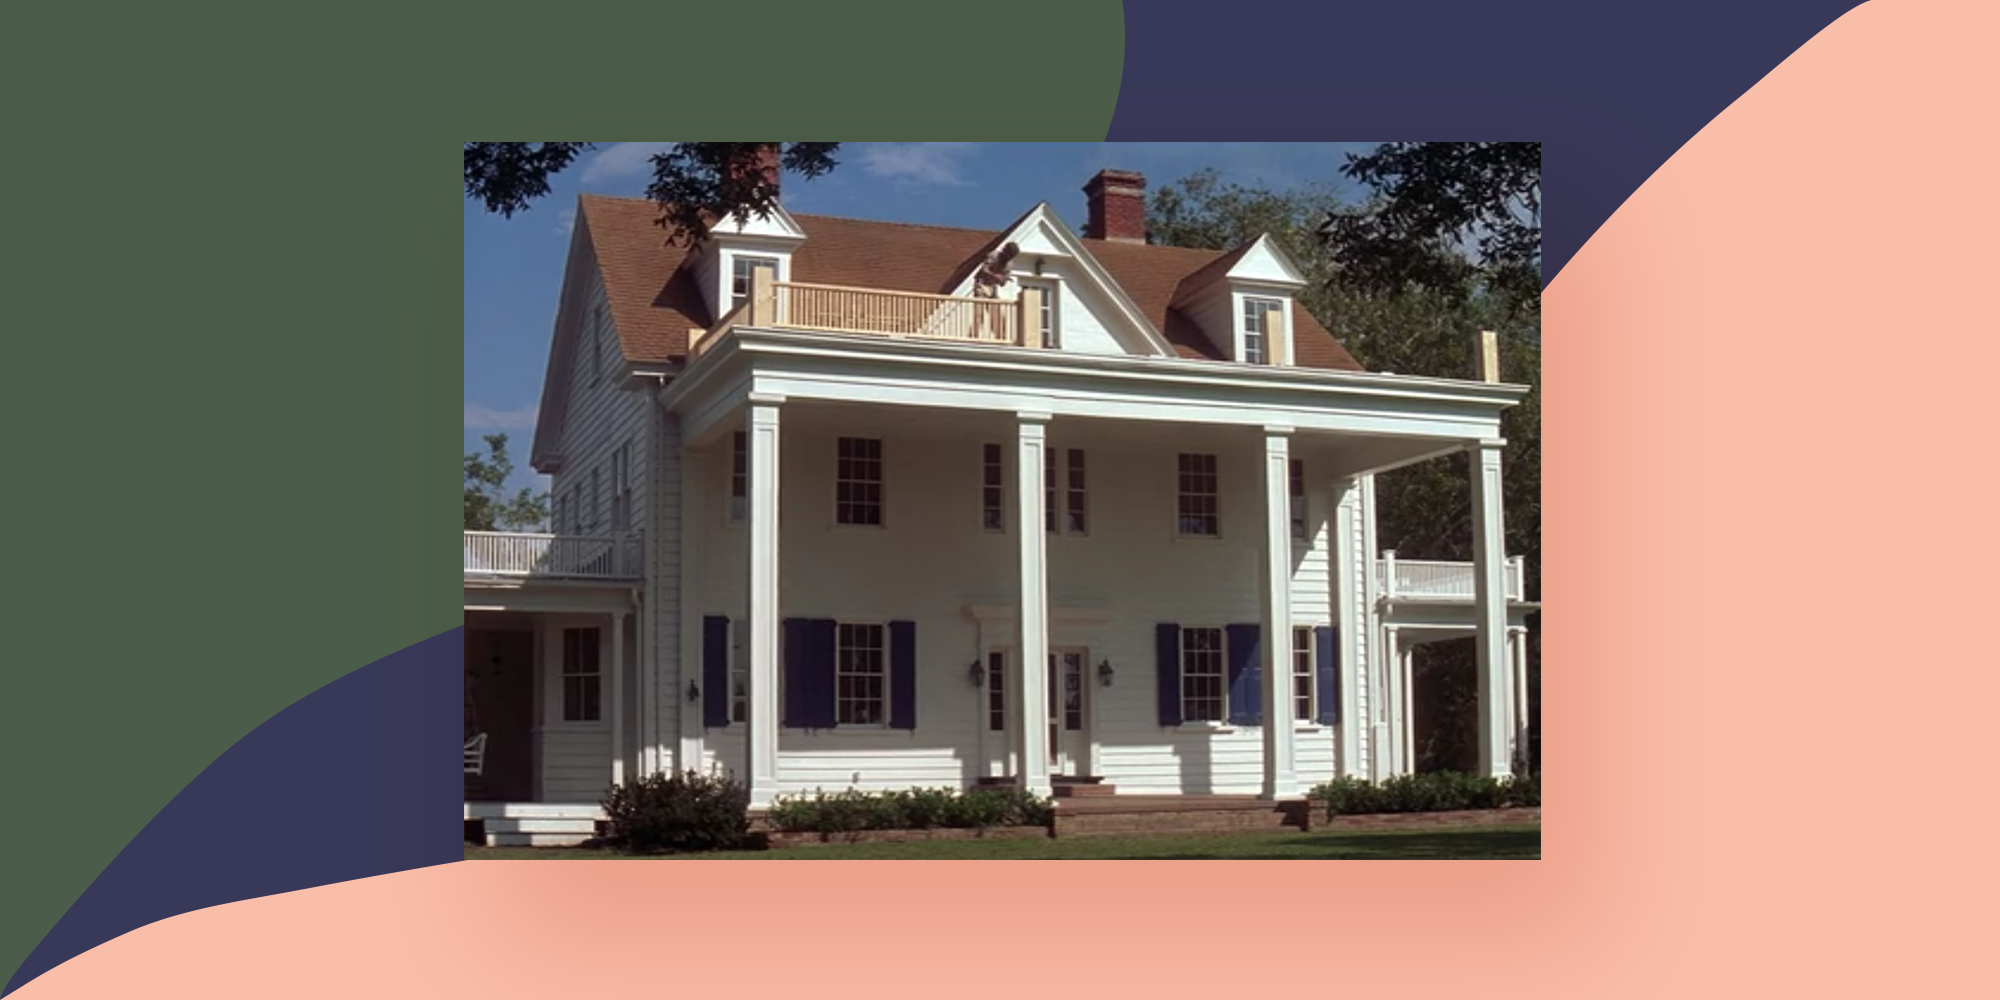 40 Famous Houses From Movies and TV Shows You Can Actually Visit